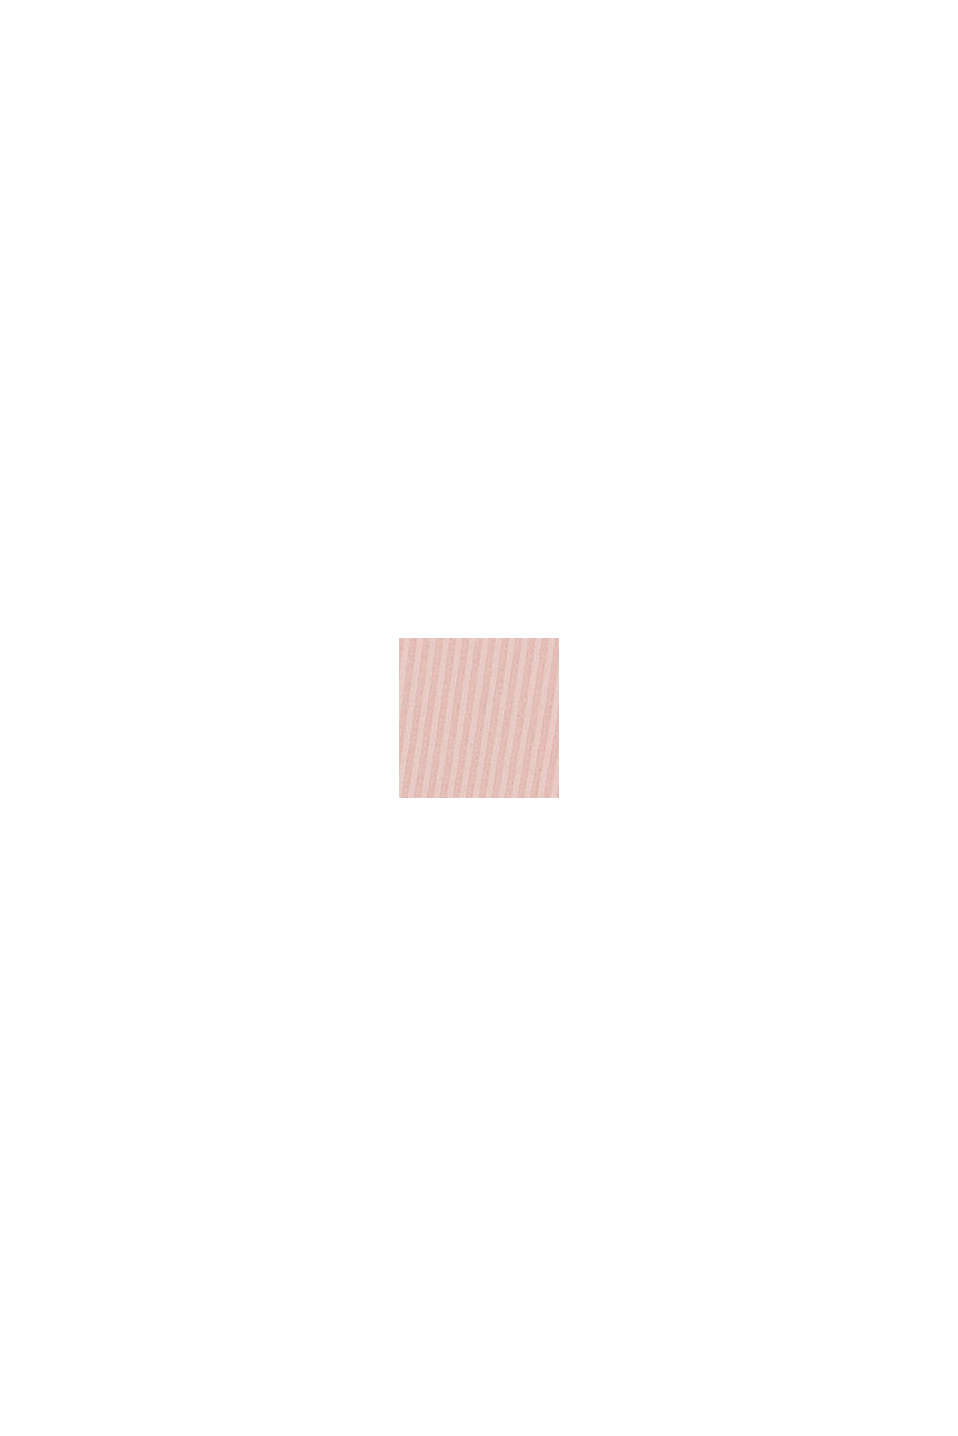 In materiale riciclato: shorts a coste sottili, LIGHT PINK, swatch